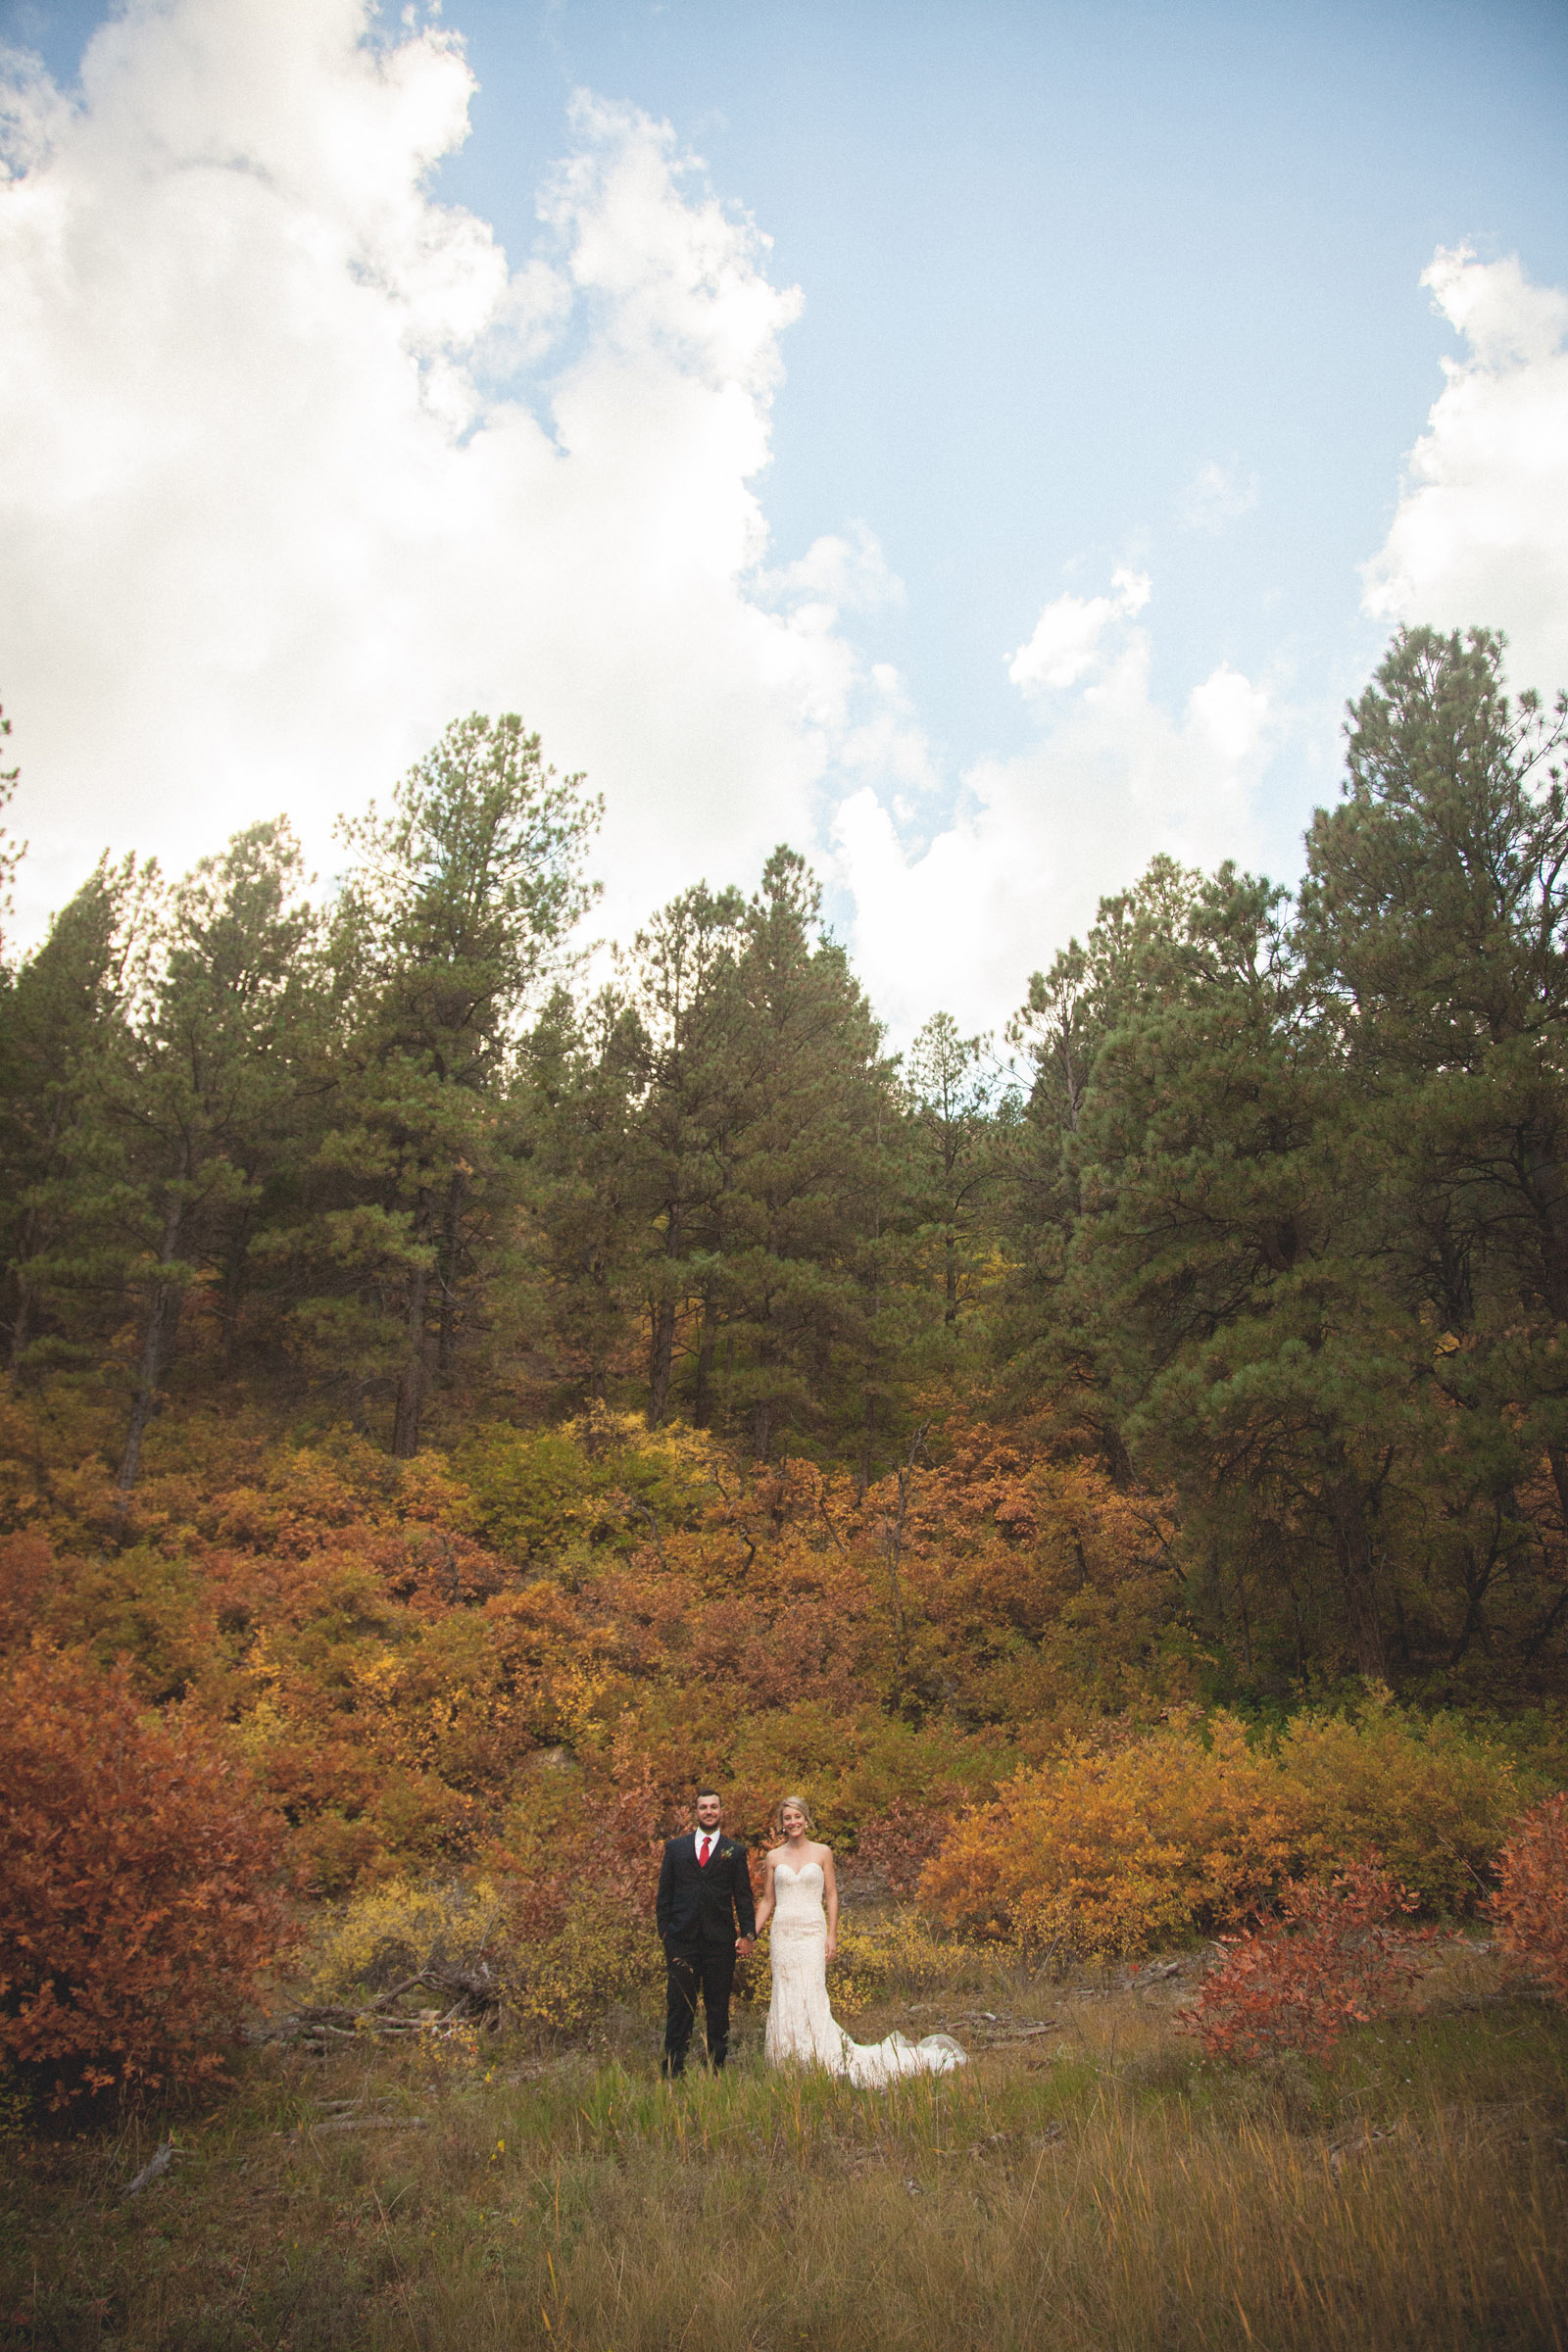 155-beautiful-bride-and-groom-photojournalist-portraits-at-elopement-wedding-in-durango-colorado-forest